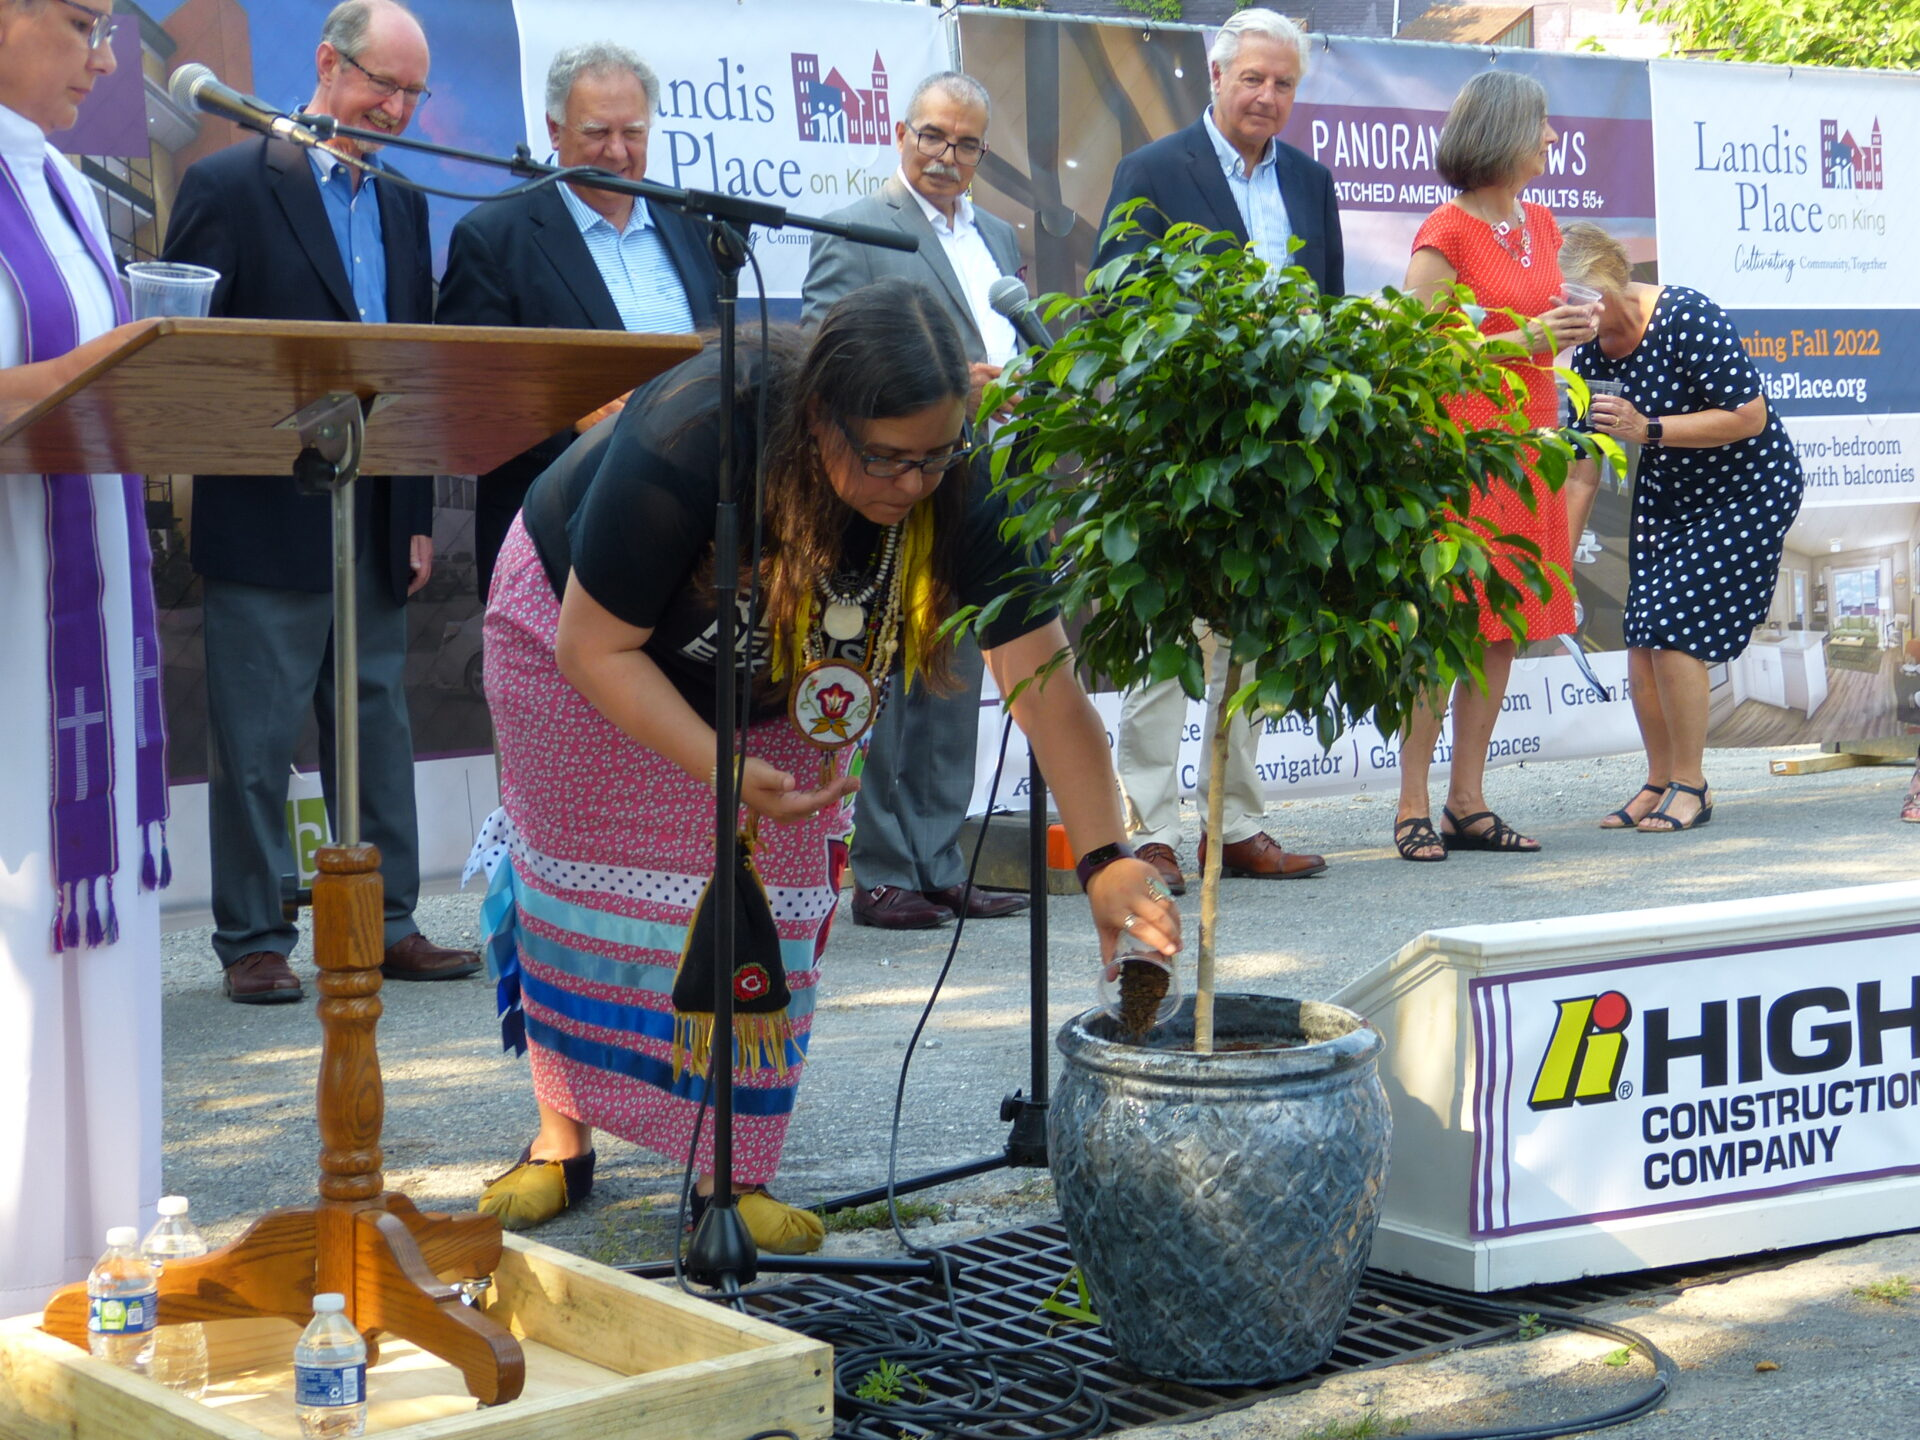 Jess McPherson, a Native American and board member of Circle Legacy Center, sprinkles dirt around a Peace Tree during a dedication and blessing ceremony for Landis Place on King on Wednesday, July 7, 2021. (Photo: Tim Stuhldreher)